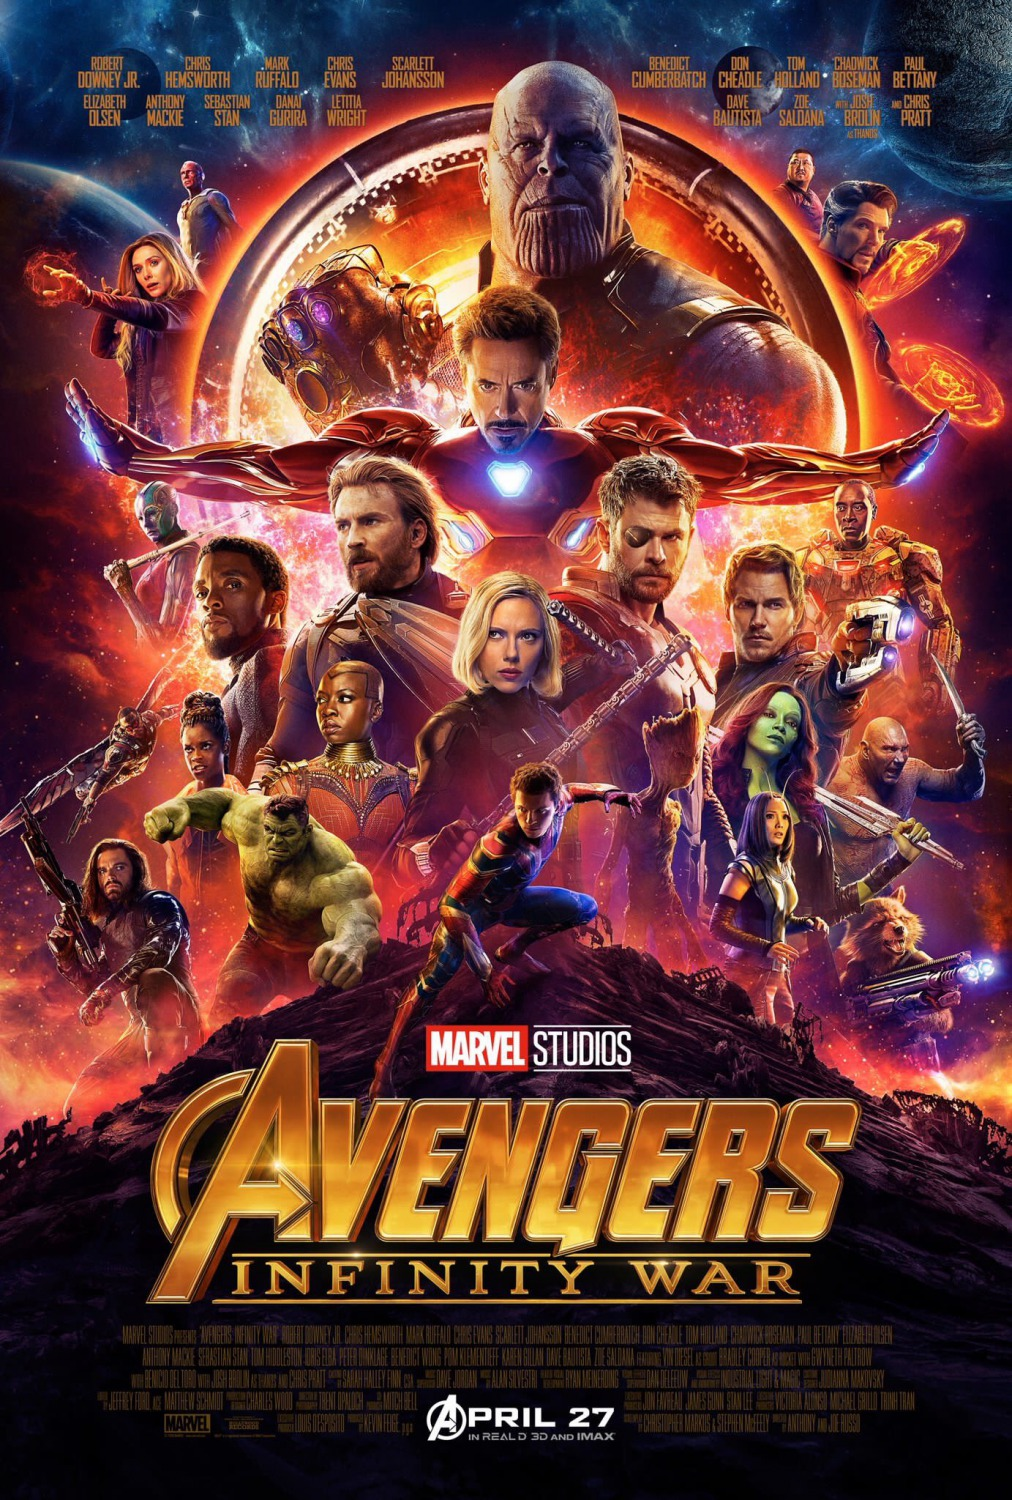 Avengers: Infinity War poster featuring Thanos and almost every Marvel character from the past 10 years.